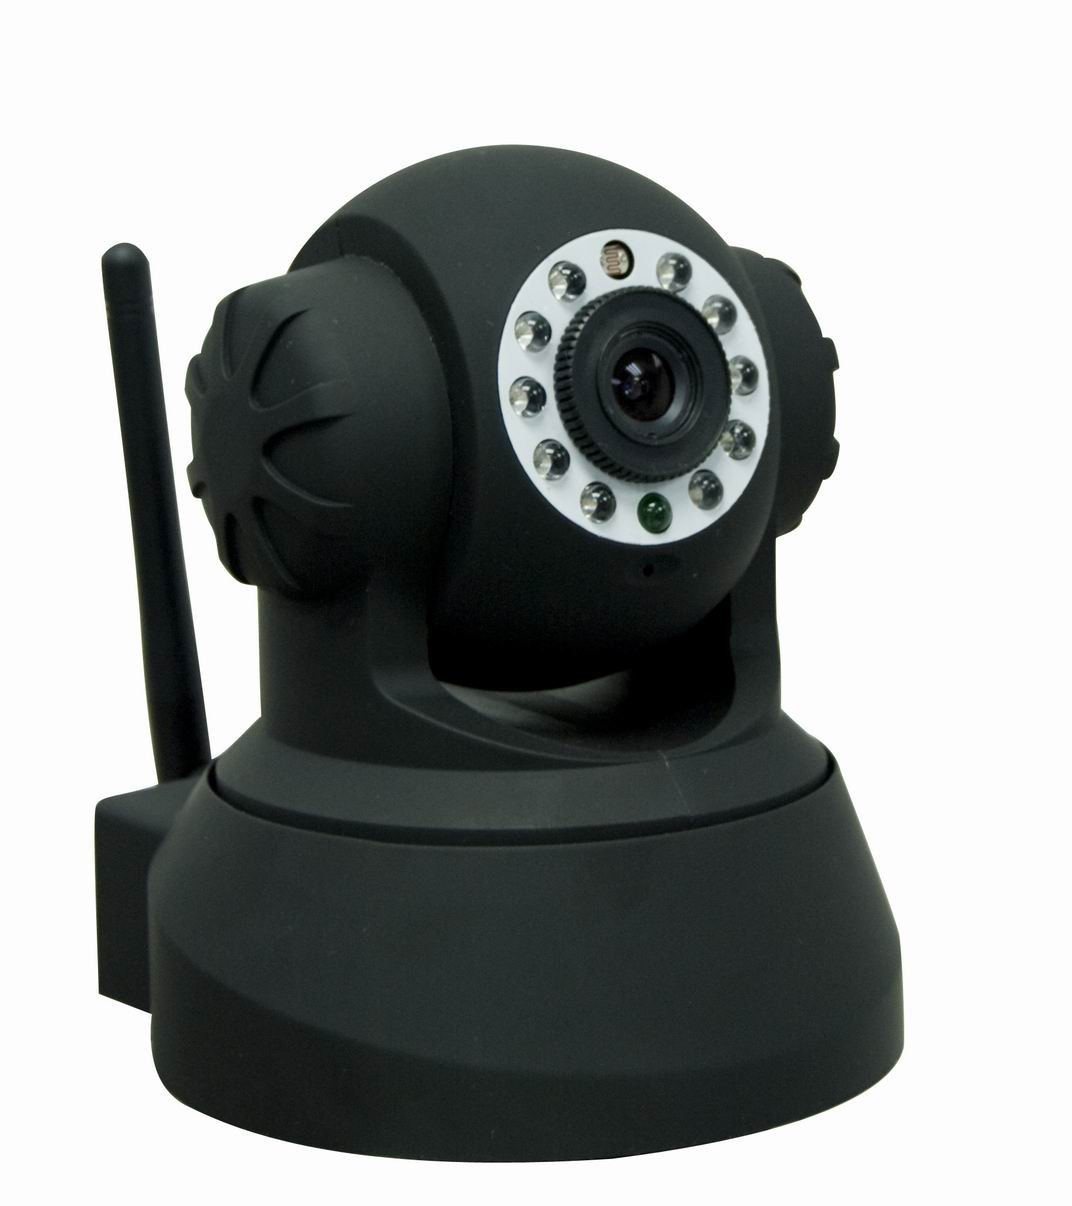 IP CAMERA PAN/TILT WIFI NIGHT/DAY BLACK